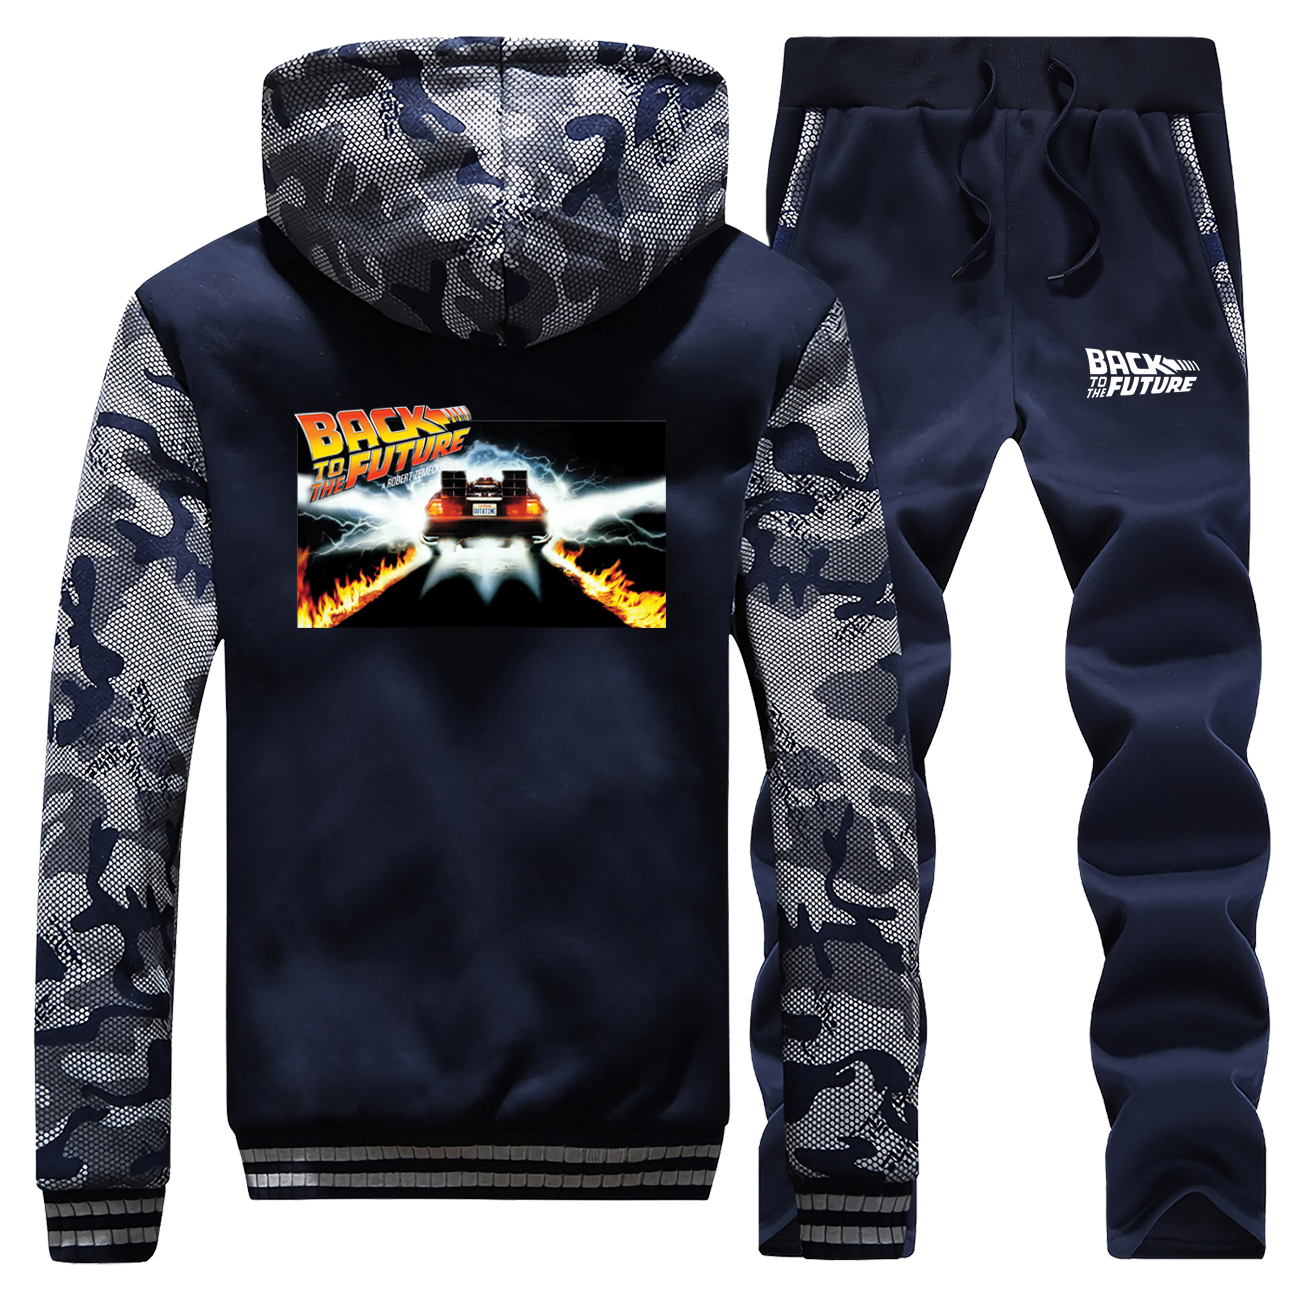 Back To The Future Hoodies Pant Set Men Tracksuit Coat Science Fiction Track Suit Winter Thick Jacket Camo Sportswear 2 PCS Sets